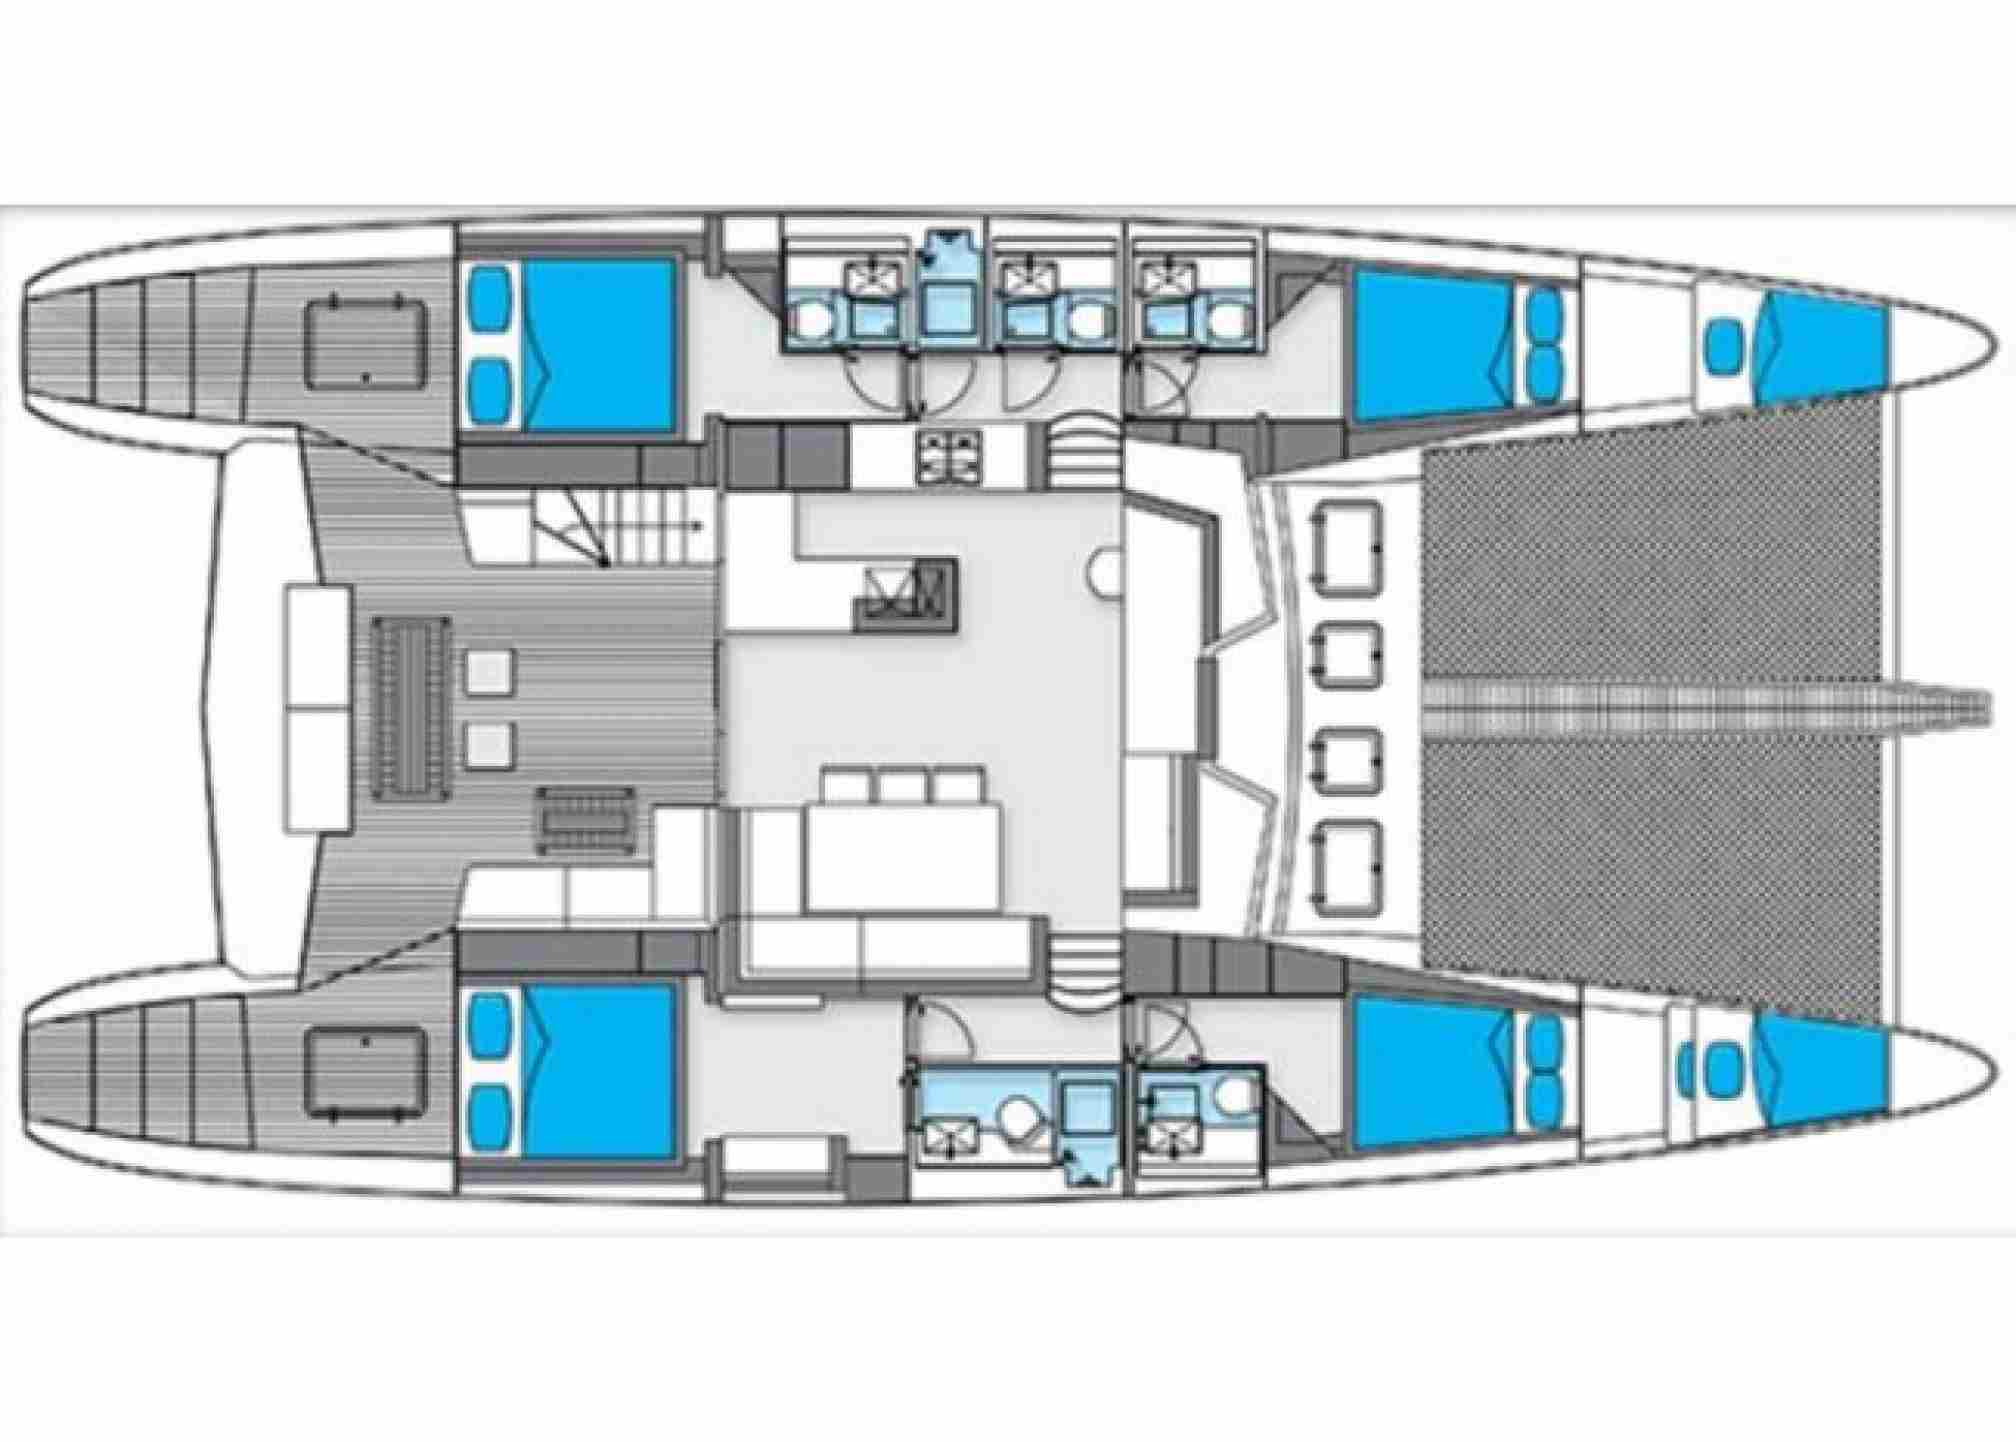 Sunreef 62 catamaran charter layout